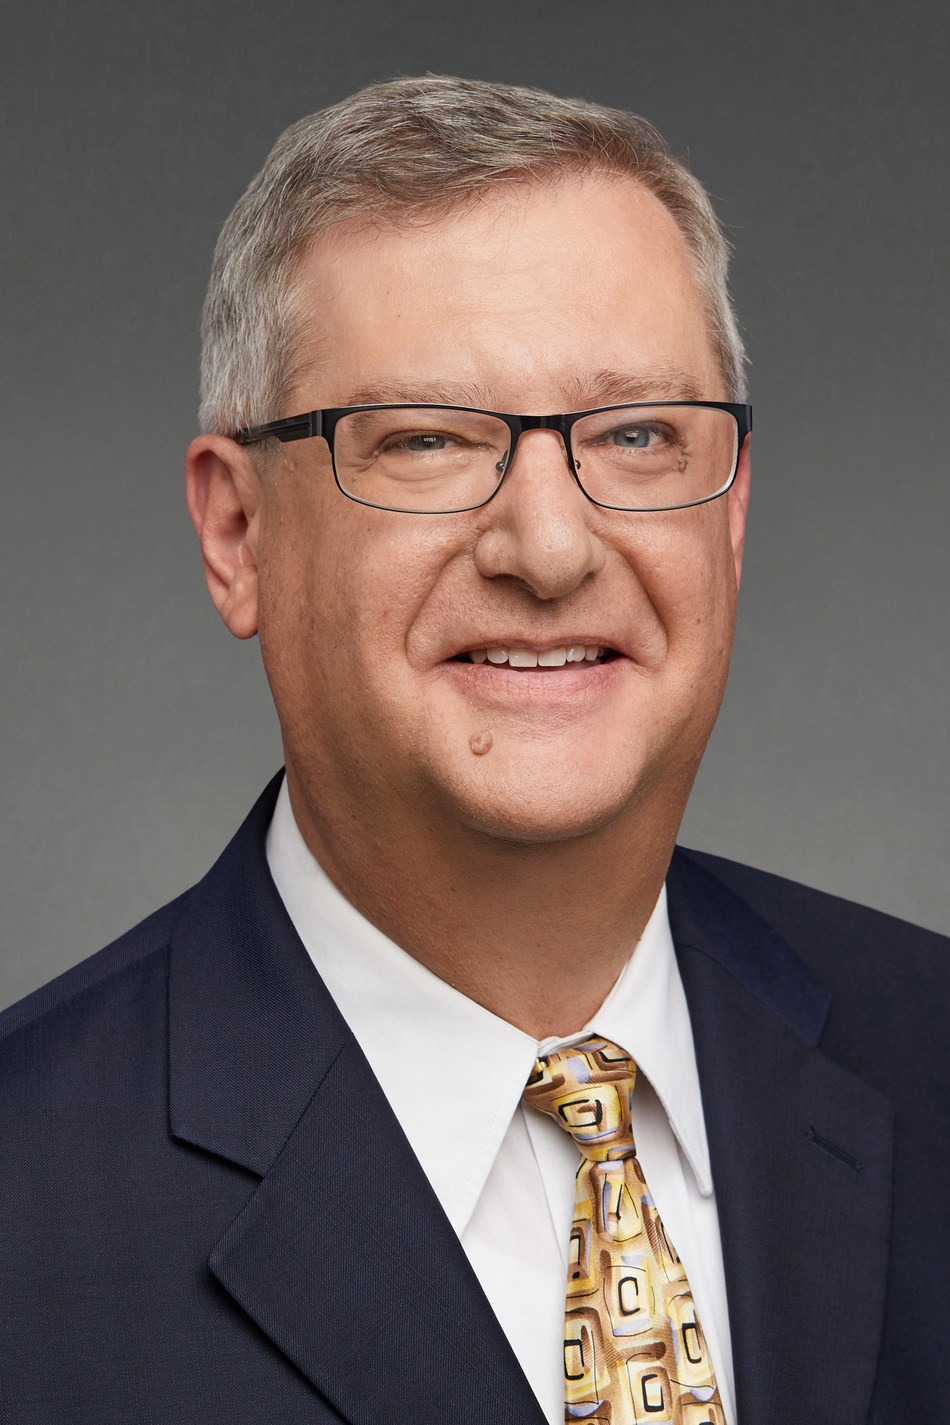 Kenneth Kamper Joins Greeley and Hansen as Managing Director